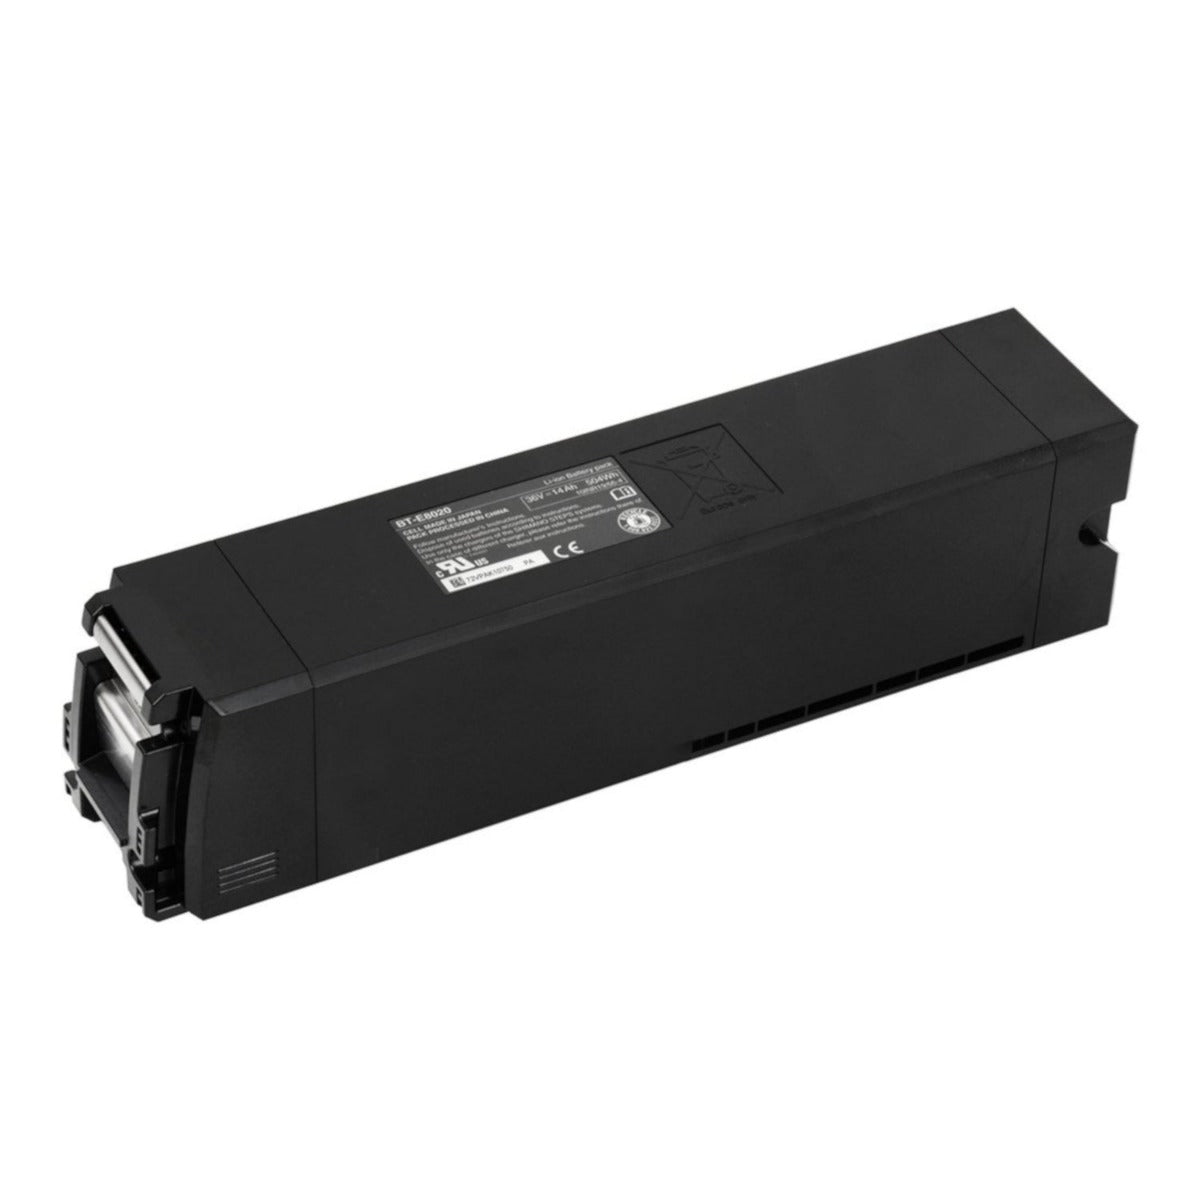 Shimano Steps BT-E8020 504Wh Integrated Battery - Burkes Cycles